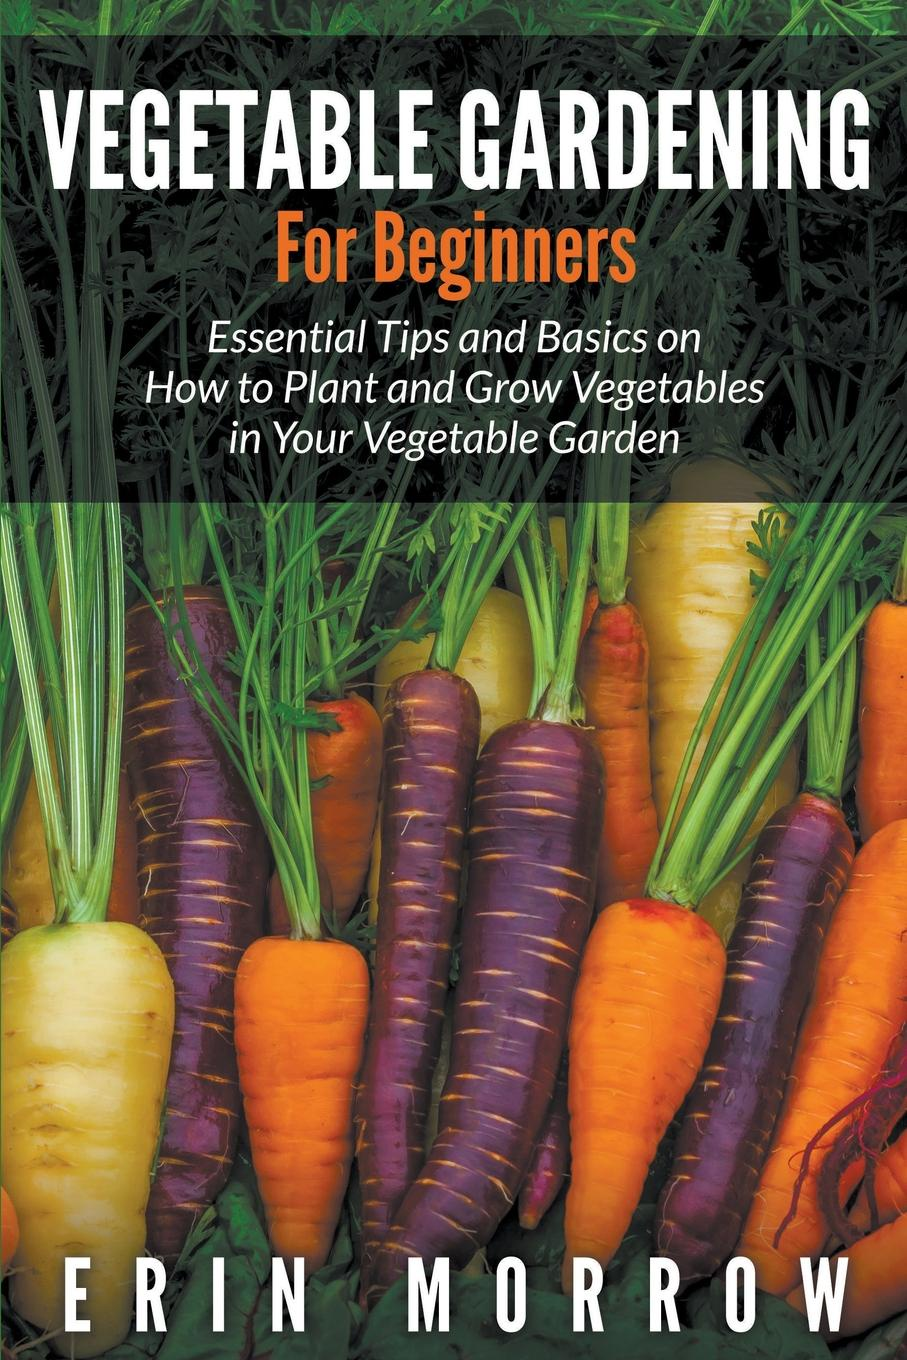 Erin Morrow Vegetable Gardening For Beginners. Essential Tips and Basics on How to Plant and Grow Vegetable in Your Vegetable Garden 72 led ufo growing lamp full spectrum hydroponics system for vegetable garden flower plant grow light hydro indoor greenhouse